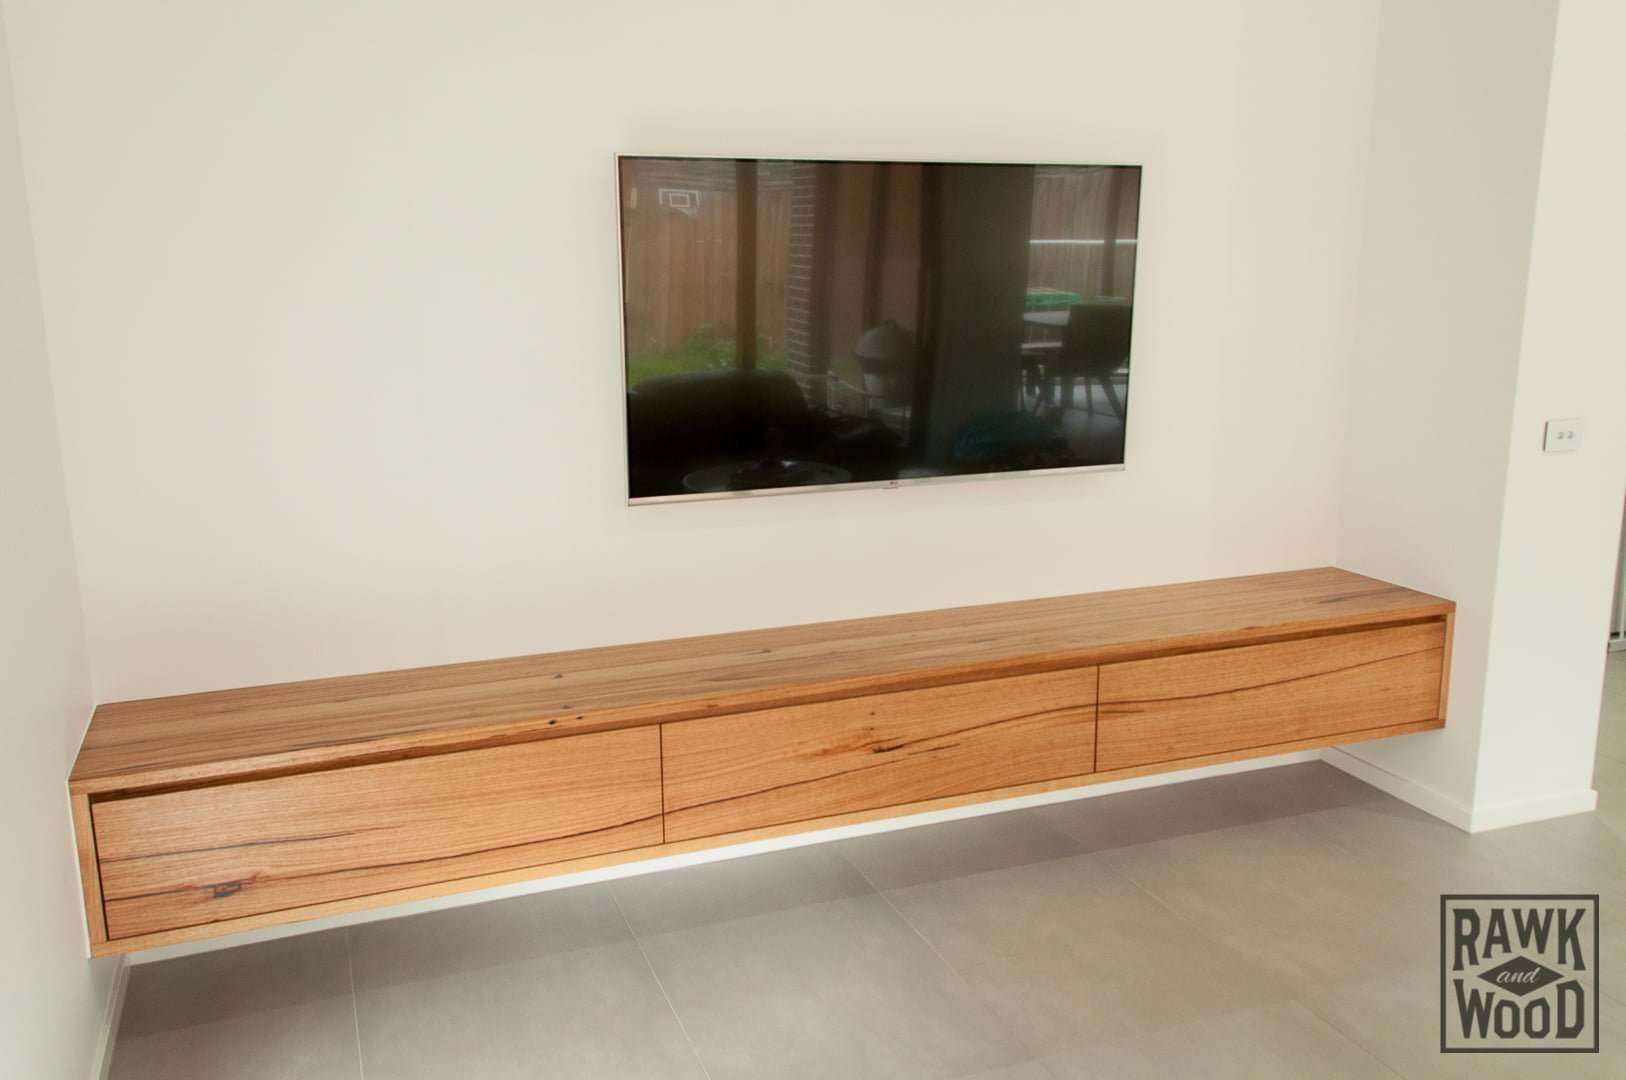 Recycled-Timber-TV-Unit-01, made in Melbourne by Rawk and Wood